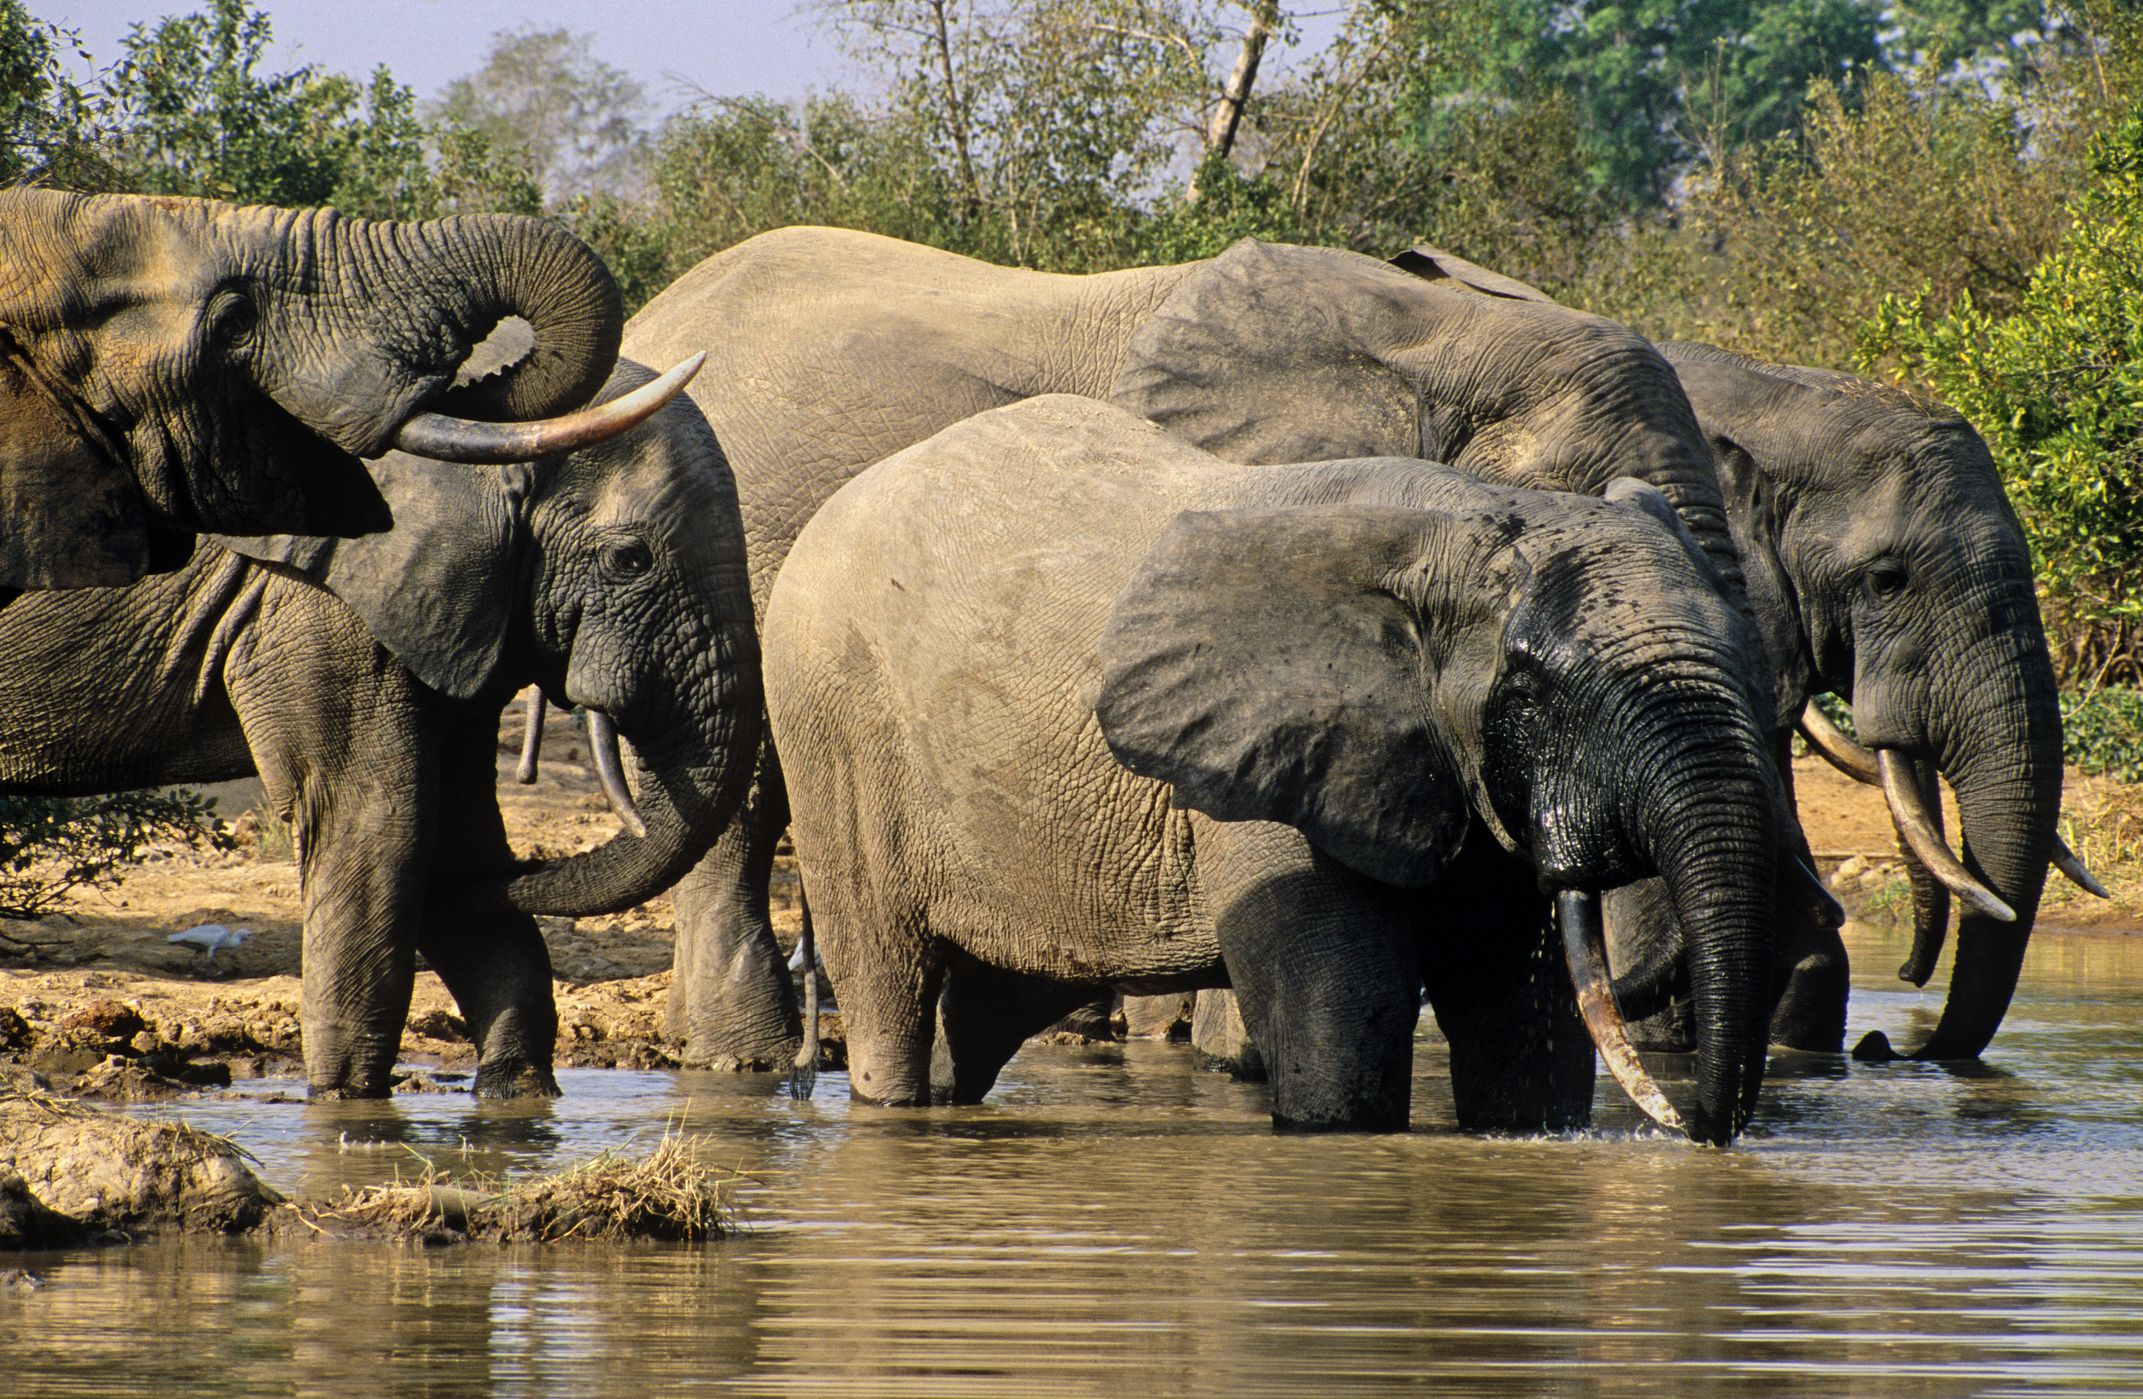 Herd of elephants at a watering hol in Mole National Parke